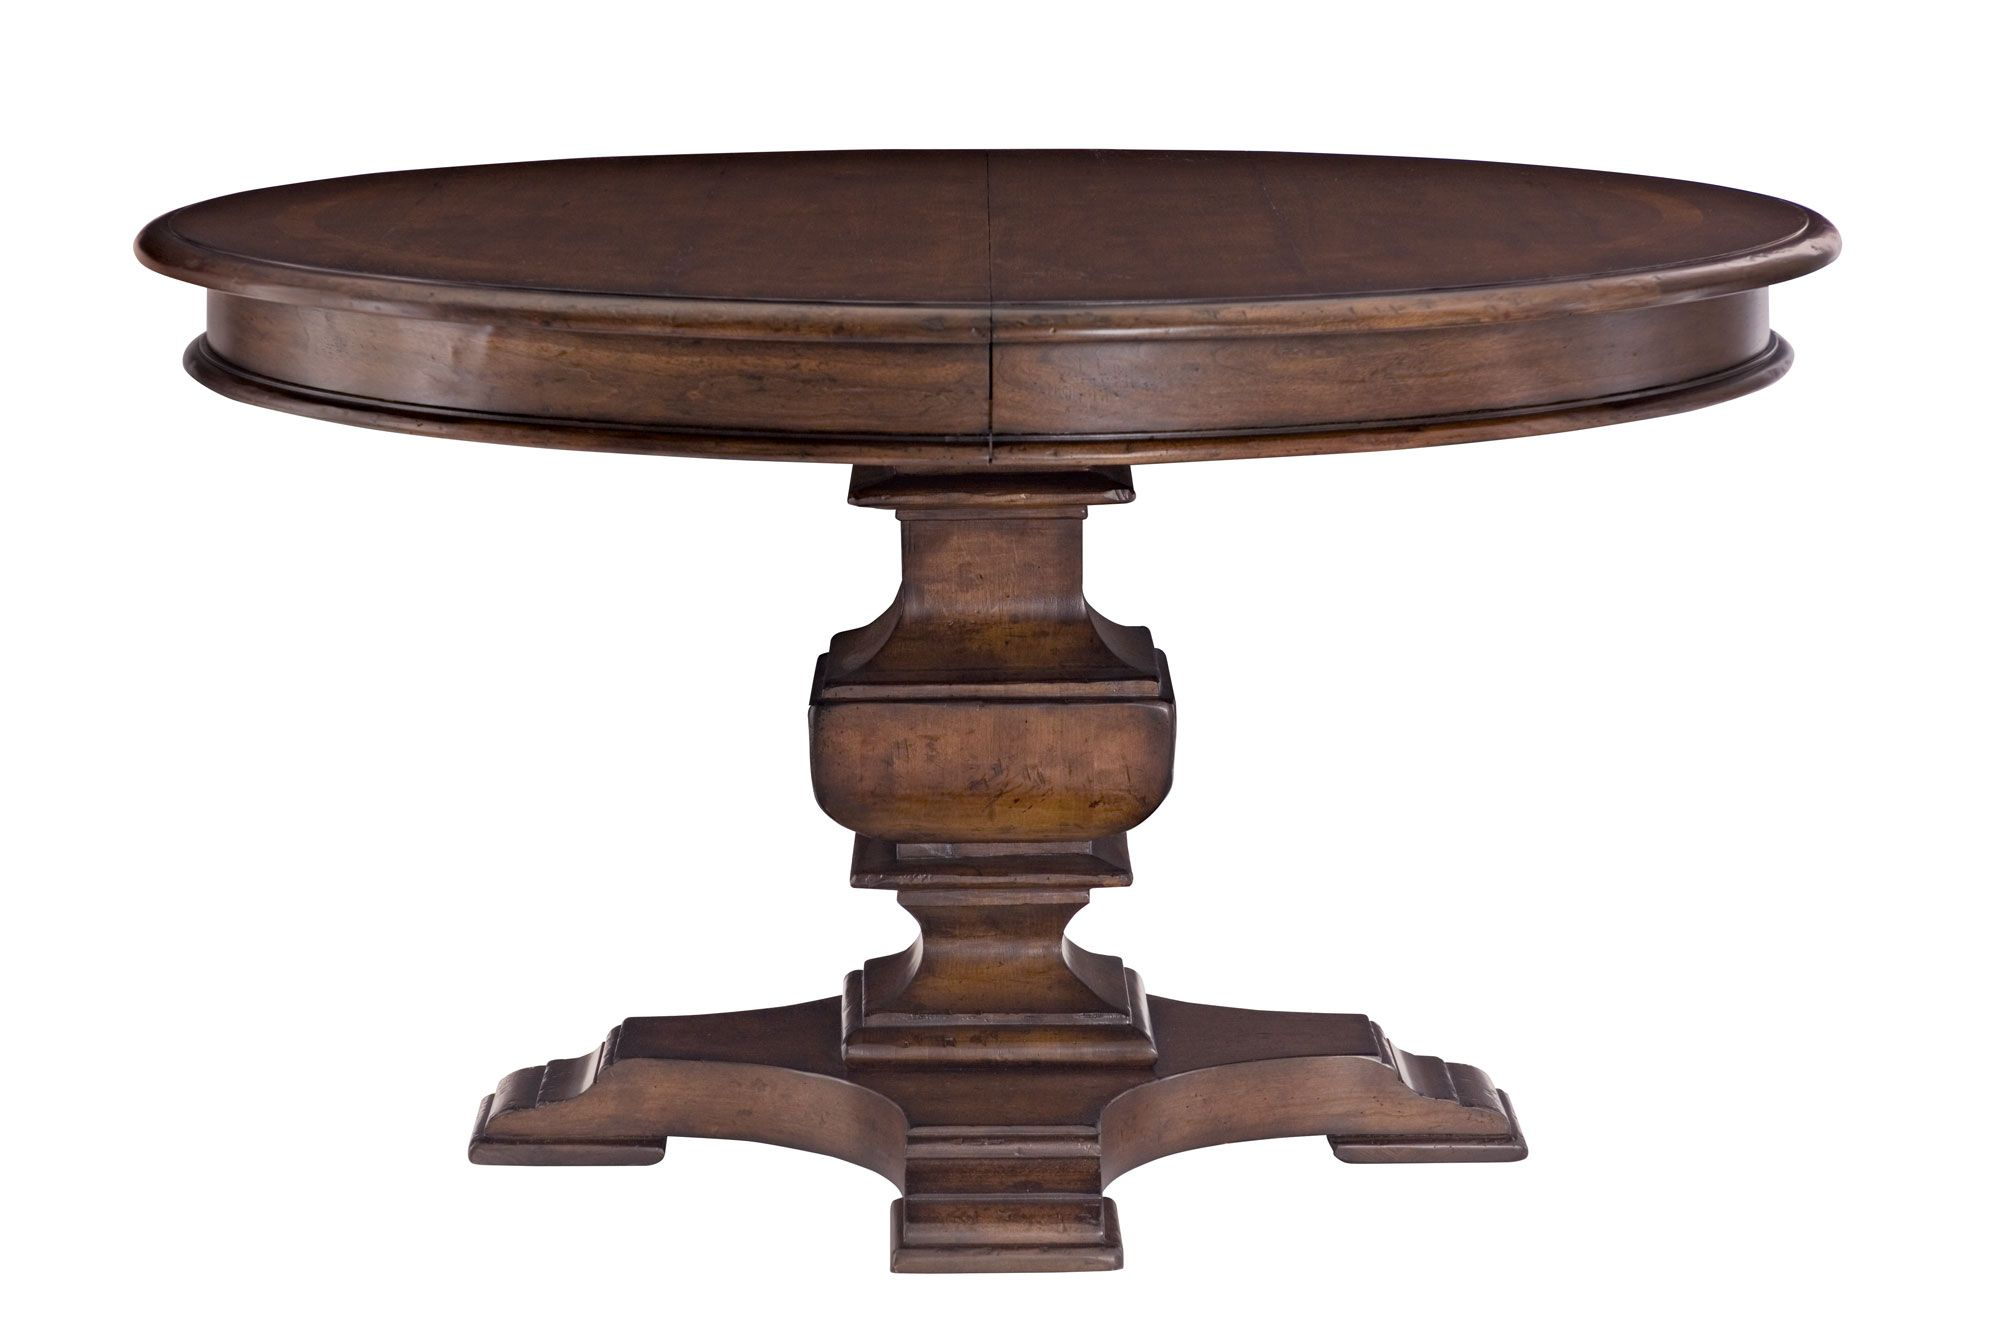 Eaton Furniture Http Bernhardt Product Eaton Square Tables Round